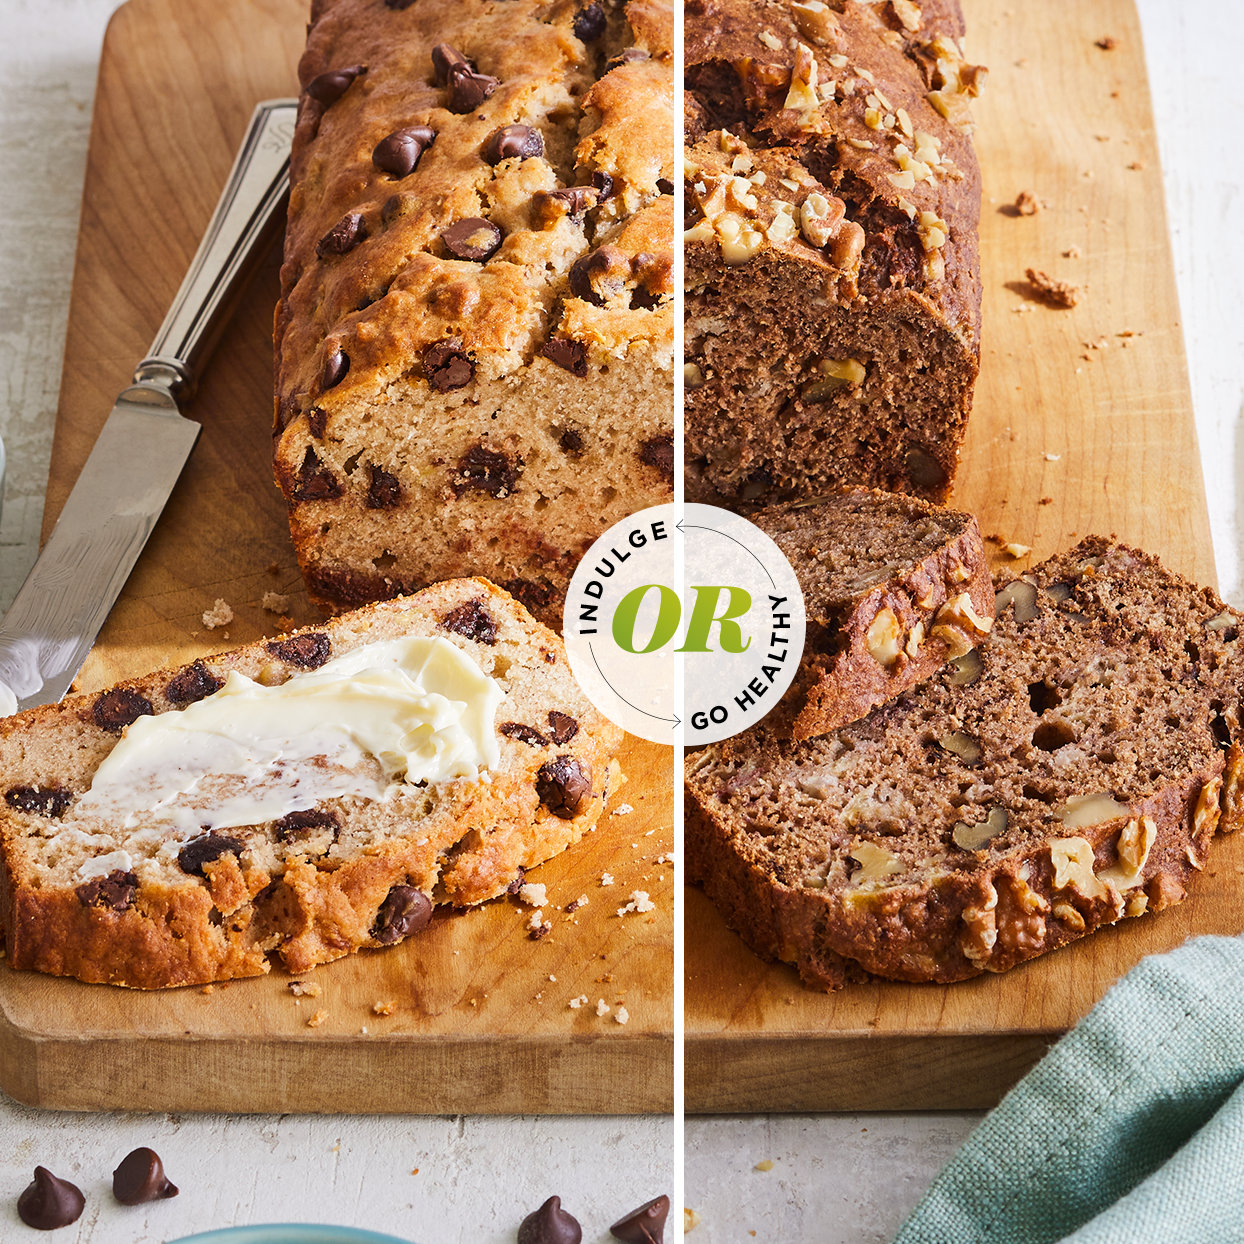 side by side composite of two kinds of breakfast breads, one with healthier ingredients